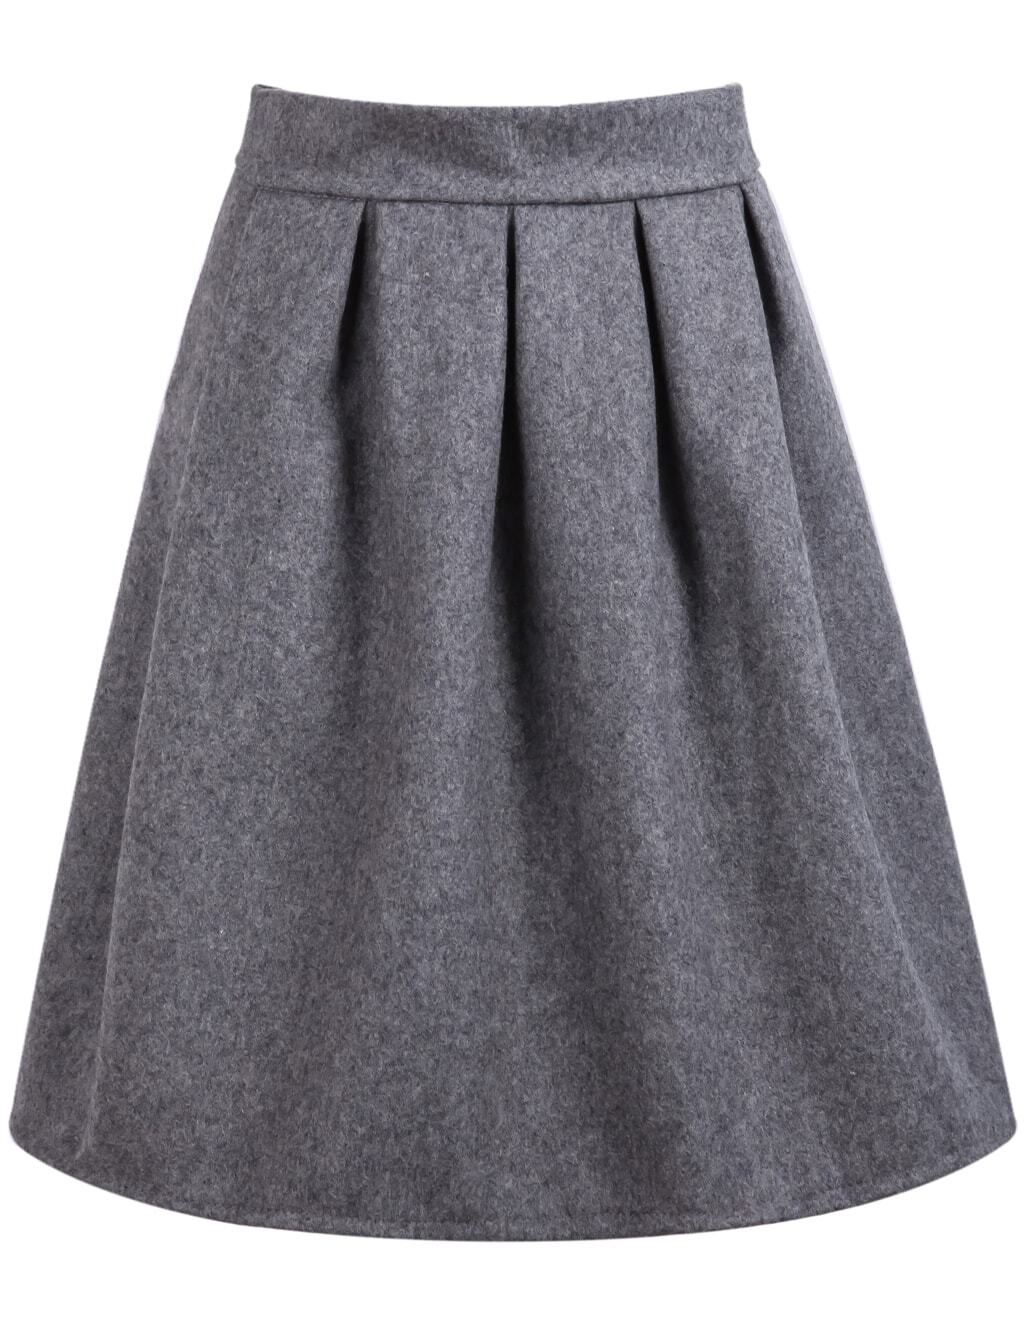 Shop for grey skirt skirts online at Target. Free shipping on purchases over $35 and save 5% every day with your Target REDcard.